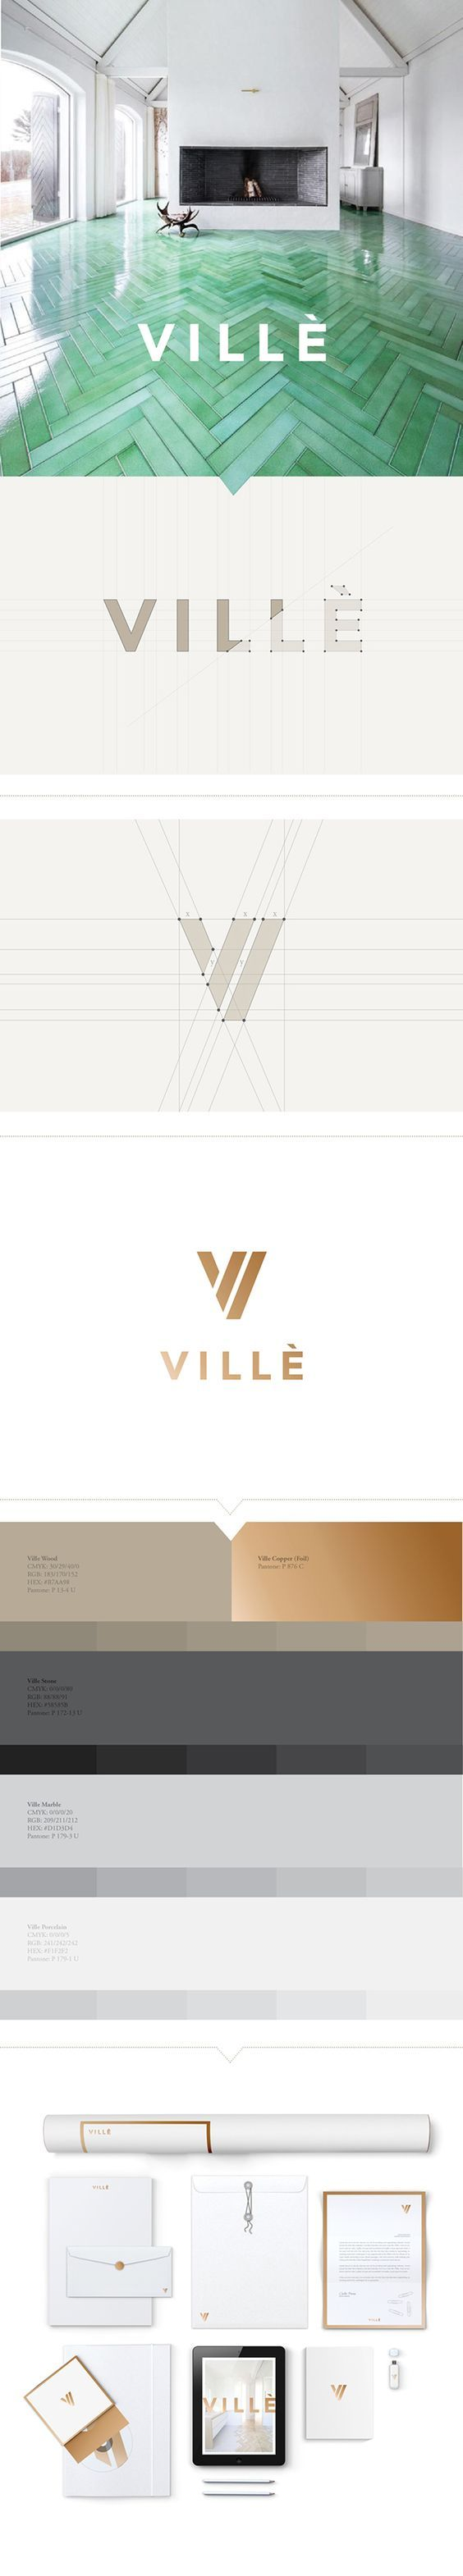 We worked with Villè, a well-established company providing architectural and design solutions to real estate developers in the A&D community. Knowing that the result of the project required nothing less than high-end luxury, we chose to create a brand rev…: